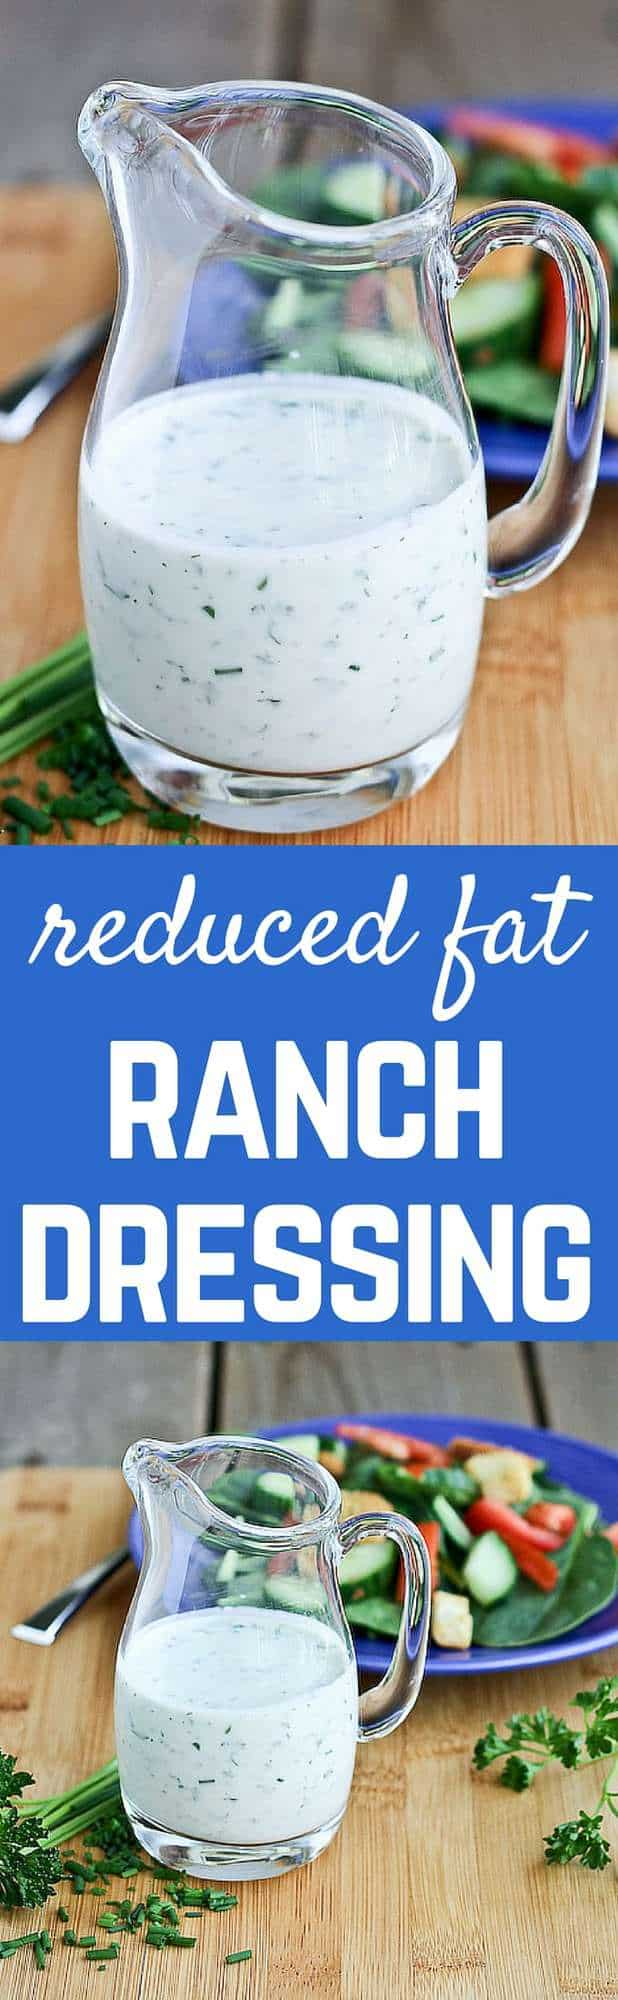 The great taste of ranch dressing without the guilt! You'll love this reduced fat ranch dressing recipe. Get the recipe on RachelCooks.com!